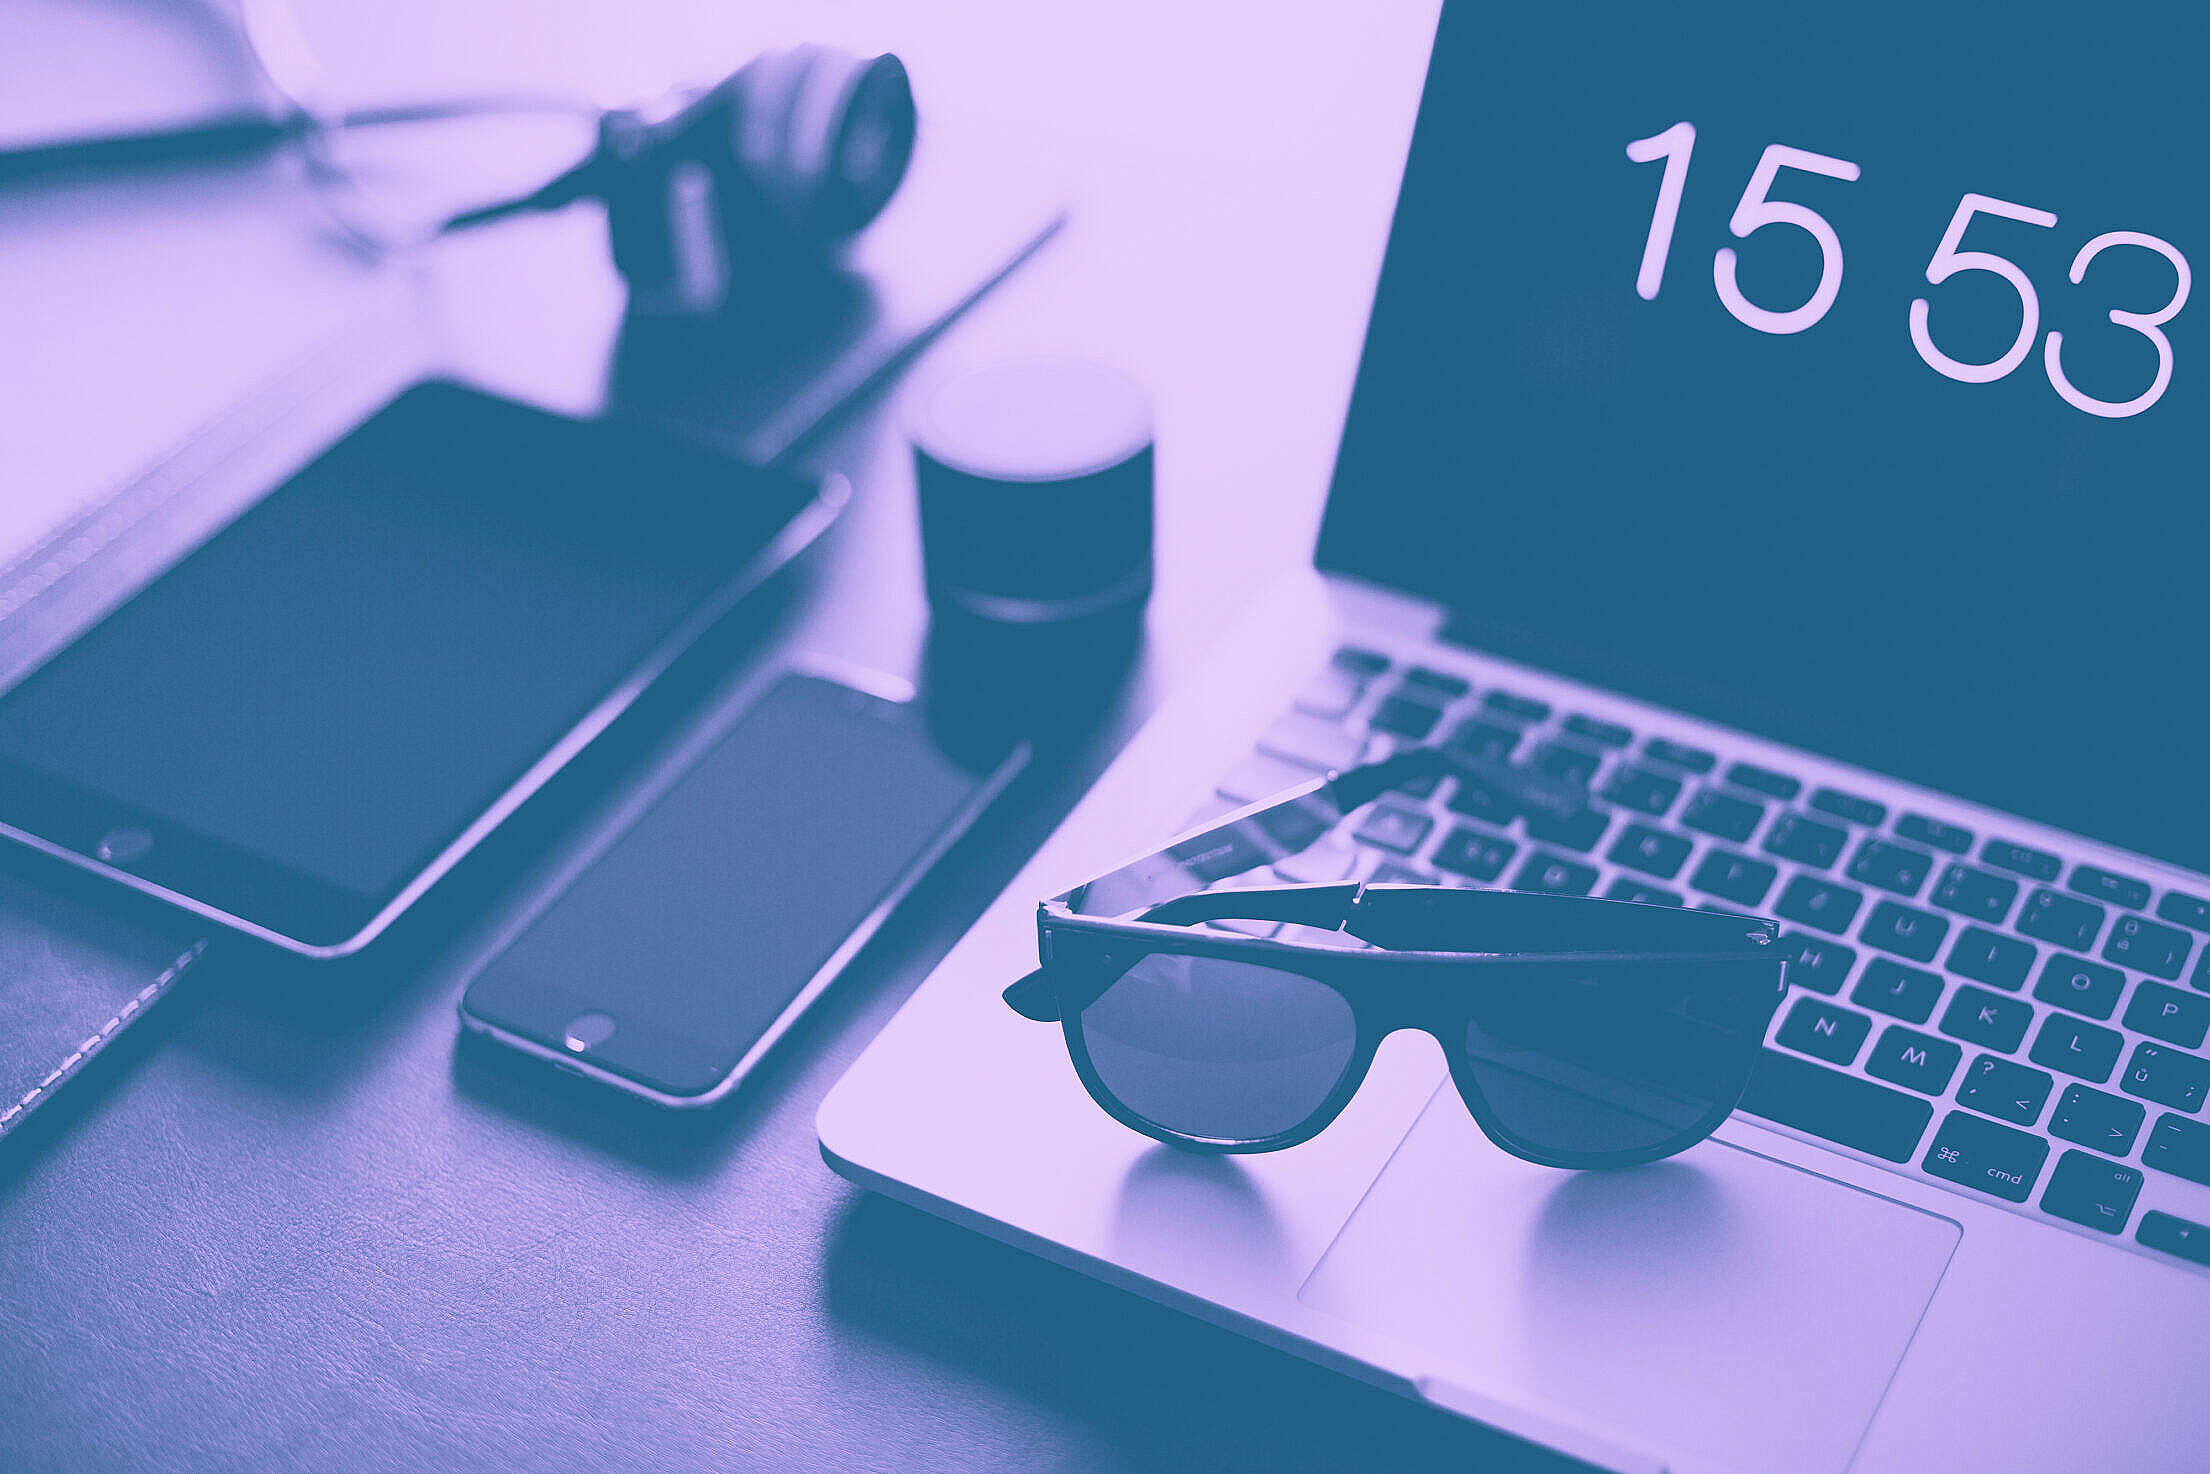 Designer Office Workspace Duotone Abstract Free Stock Photo